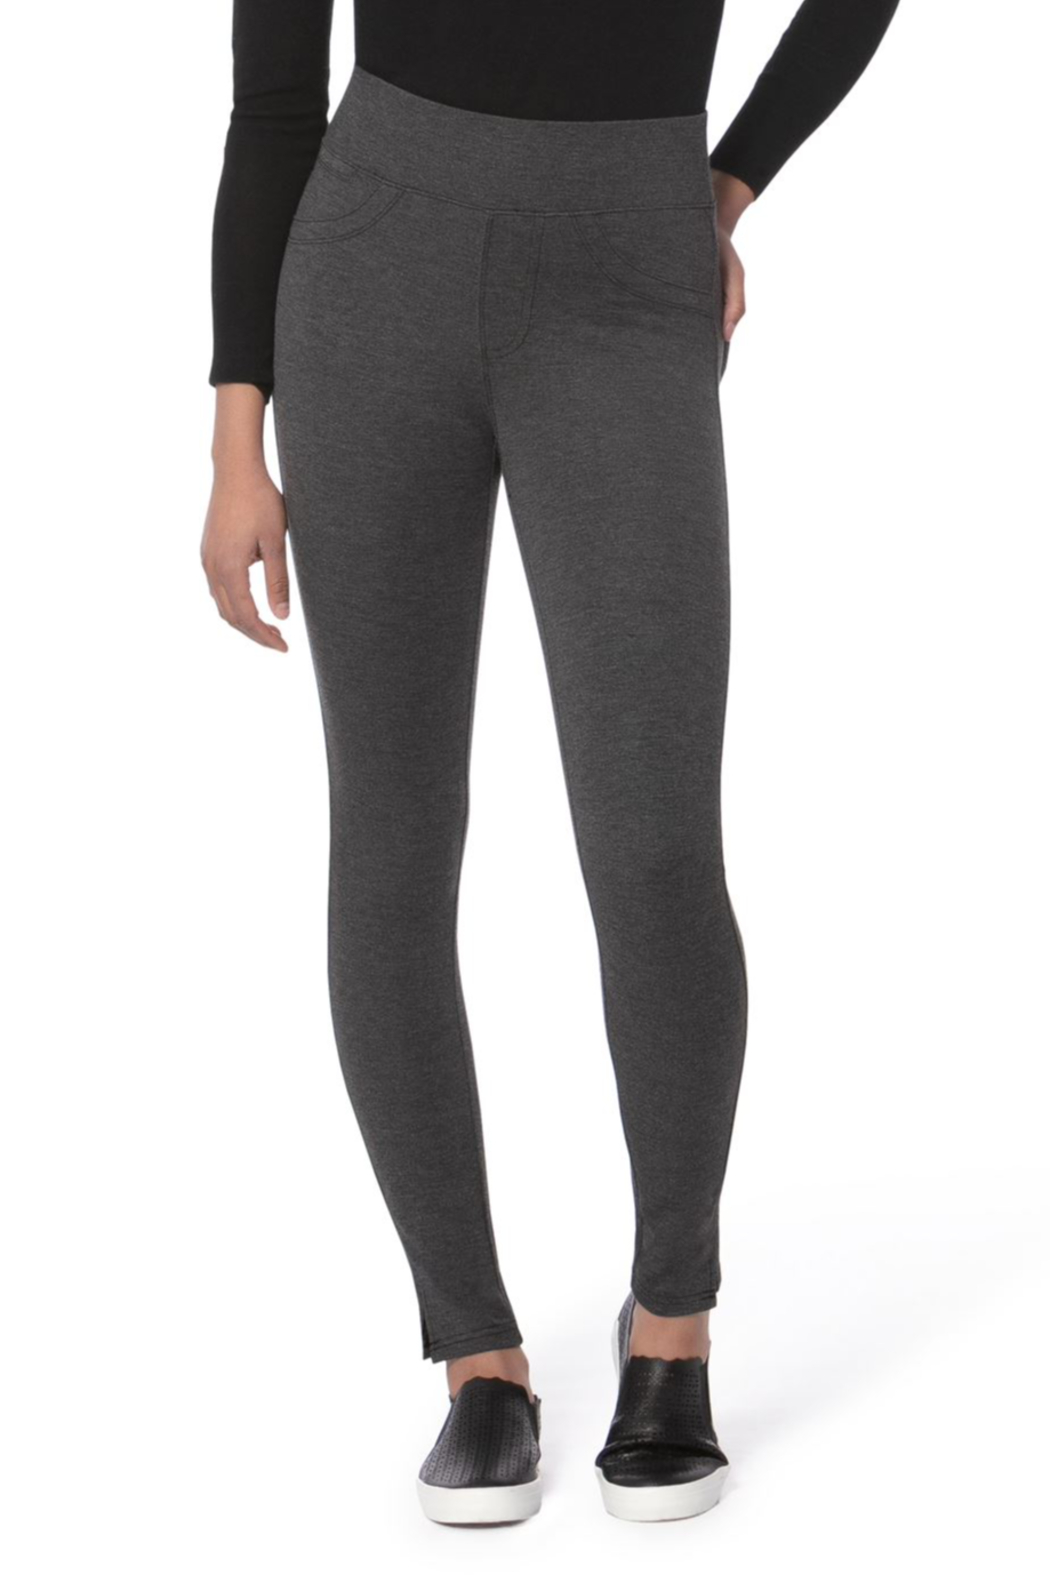 Lola Jeans Anna Mid Rise Pull on Skinny Pants - Front Cropped Image